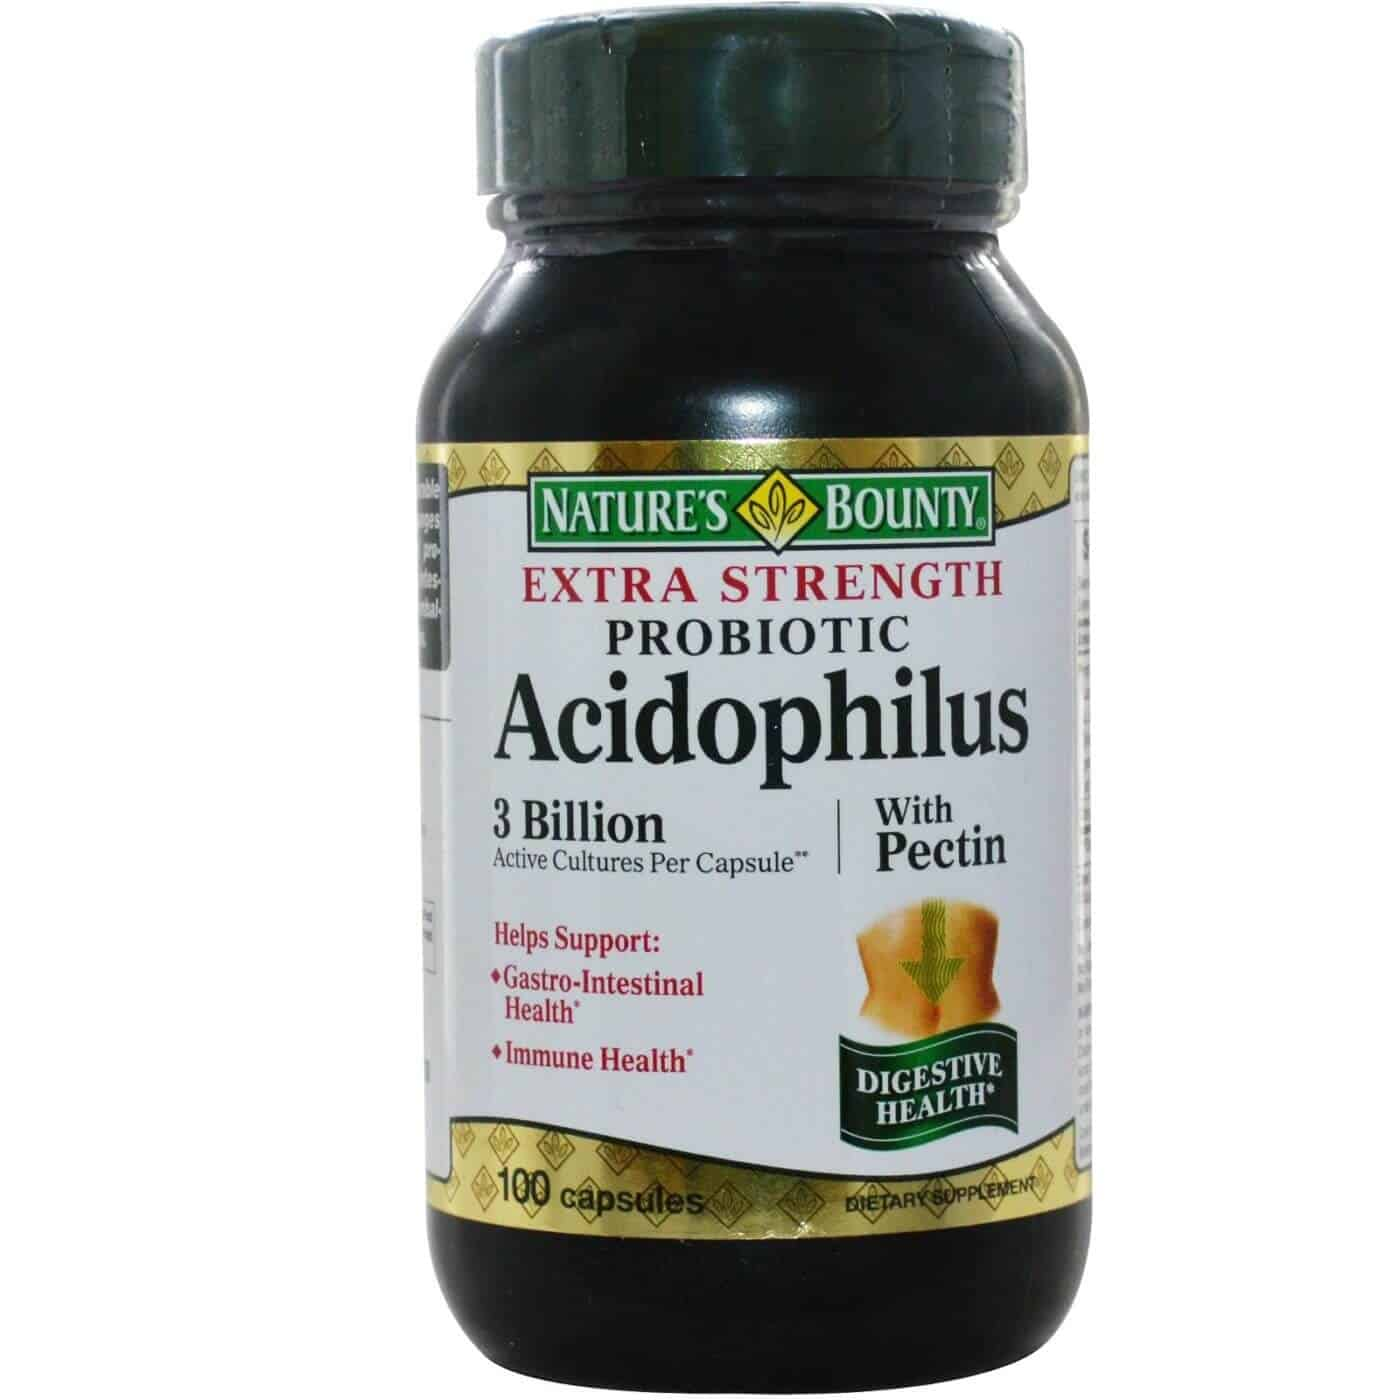 How to Find Acidophilus